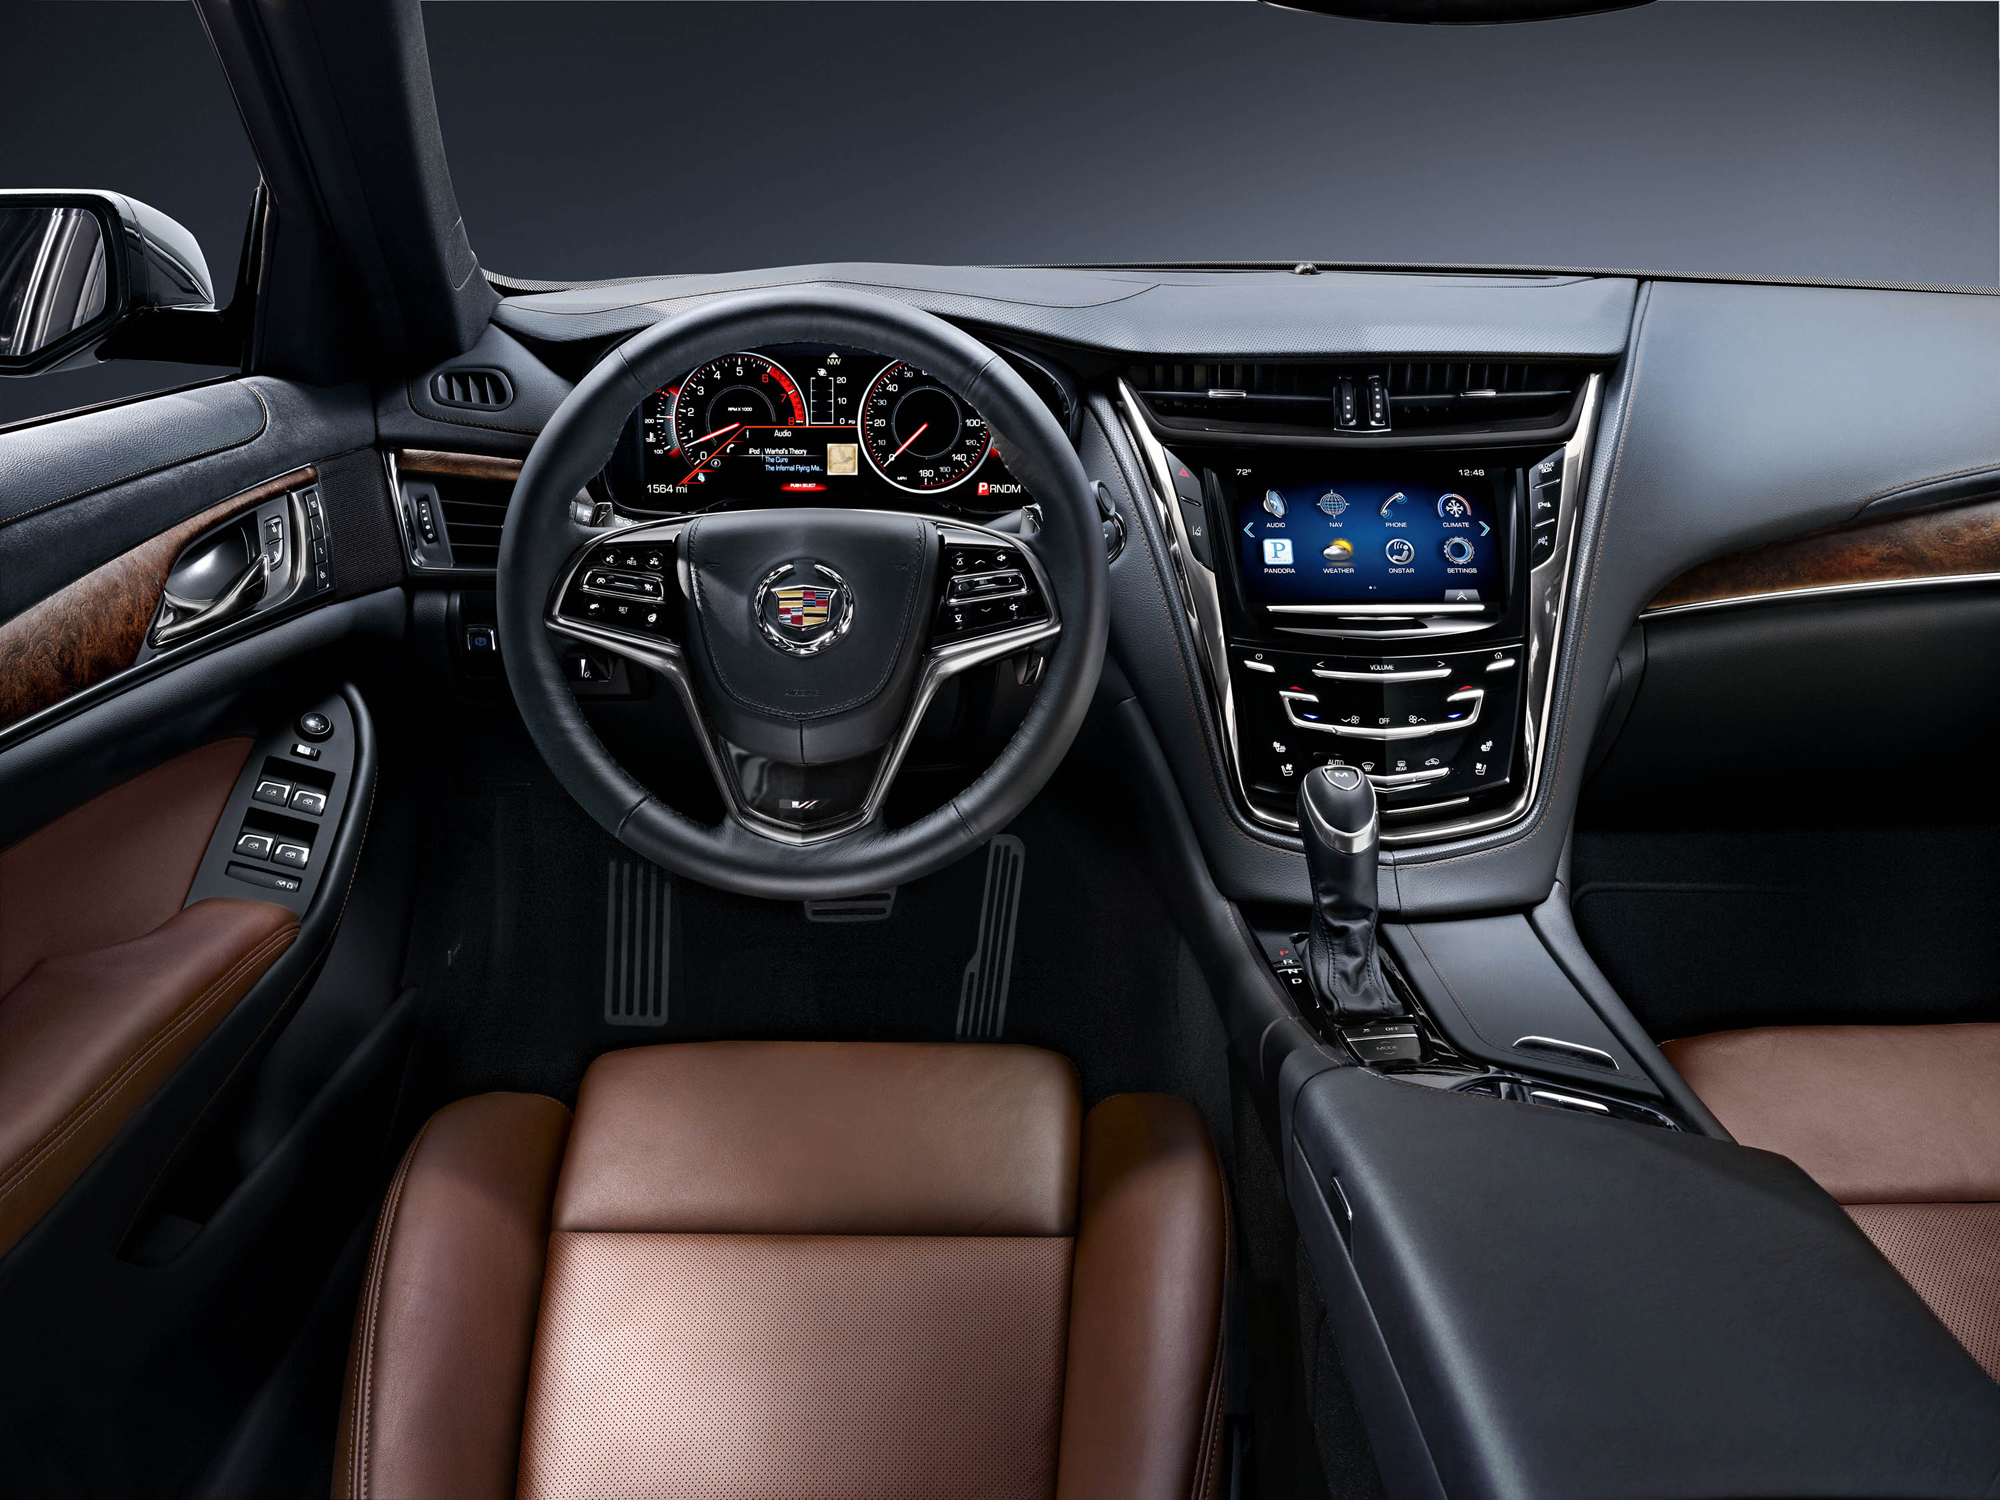 2014 Cadillac Cts V6 First Drive Motoring Middle East Car News